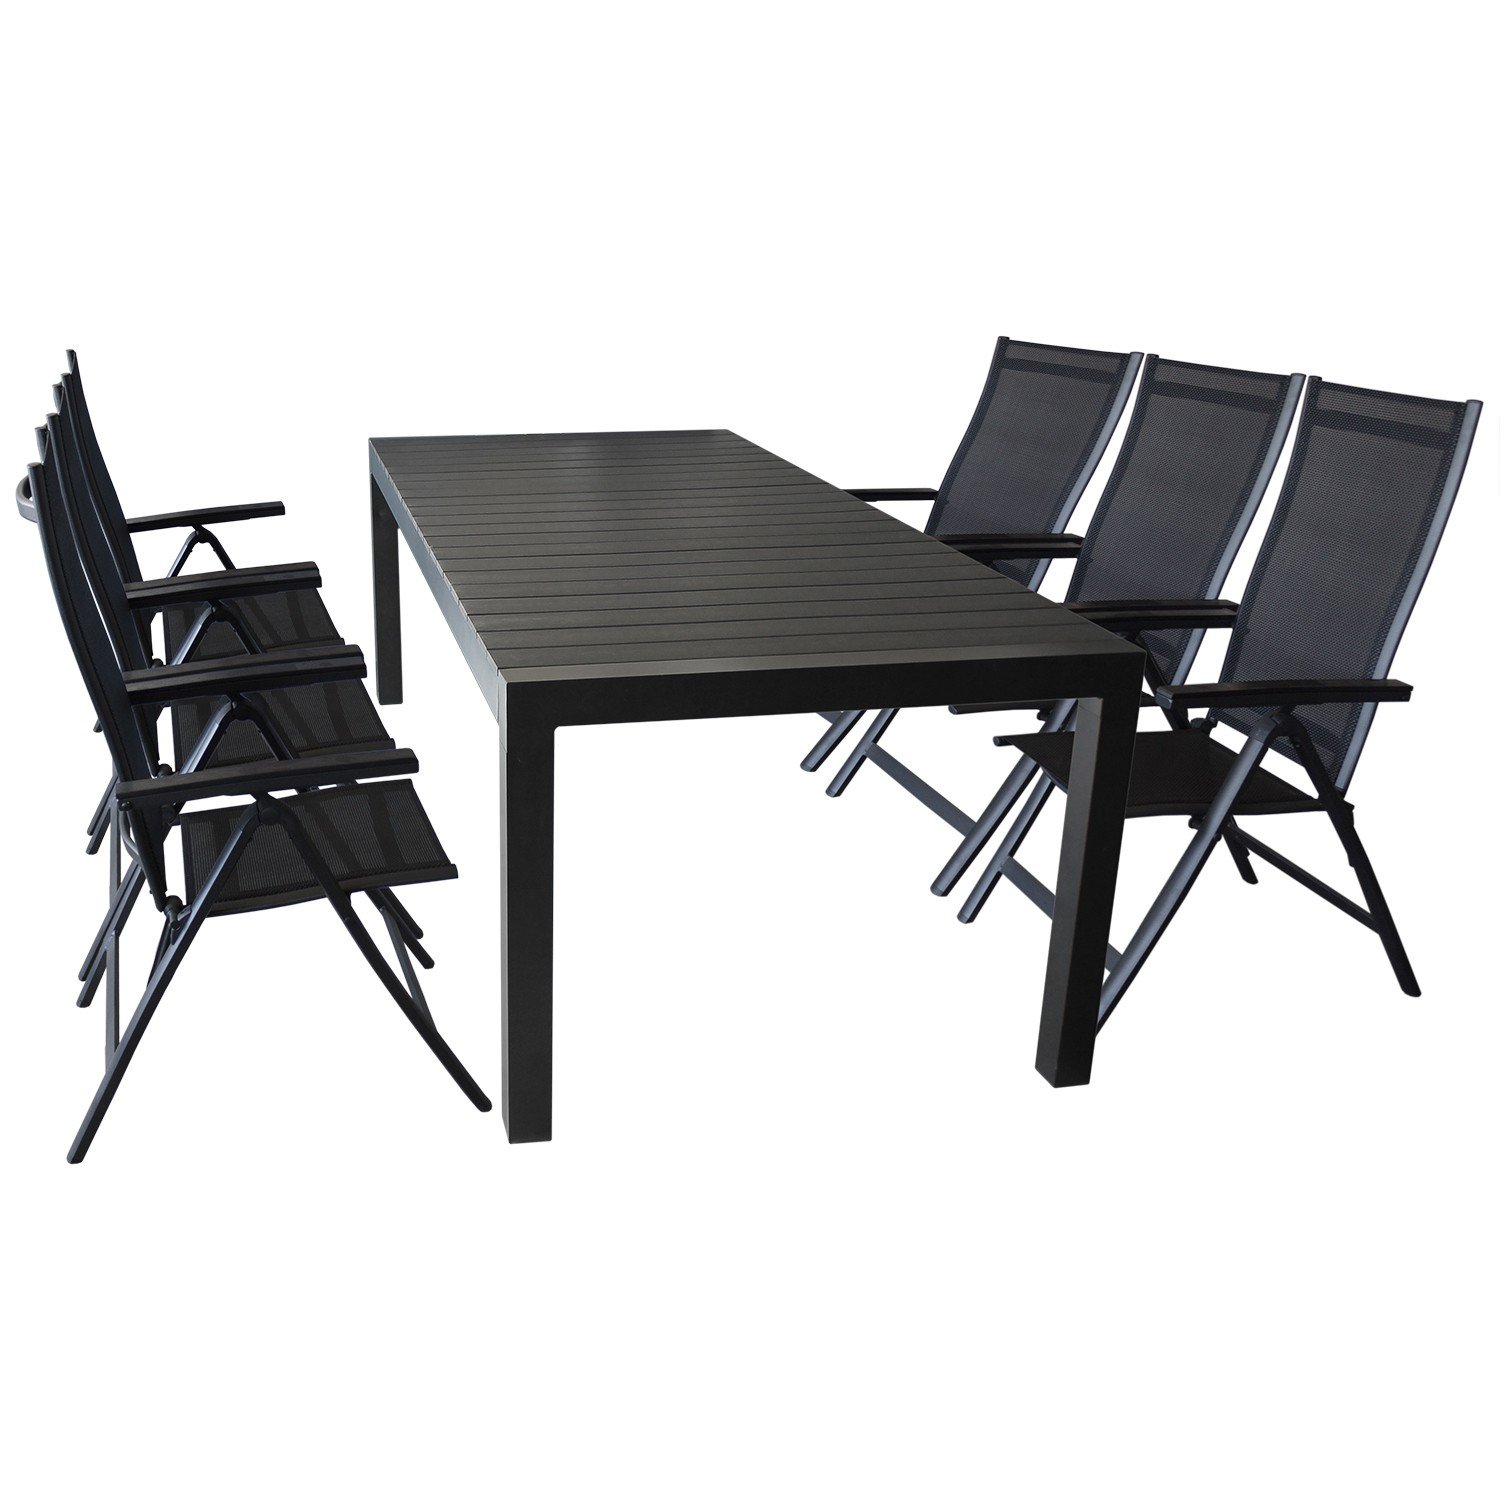 elegante gartengarnitur sitzgruppe gartenm bel terrassenm bel set 7 teilig ausziehtisch 224. Black Bedroom Furniture Sets. Home Design Ideas